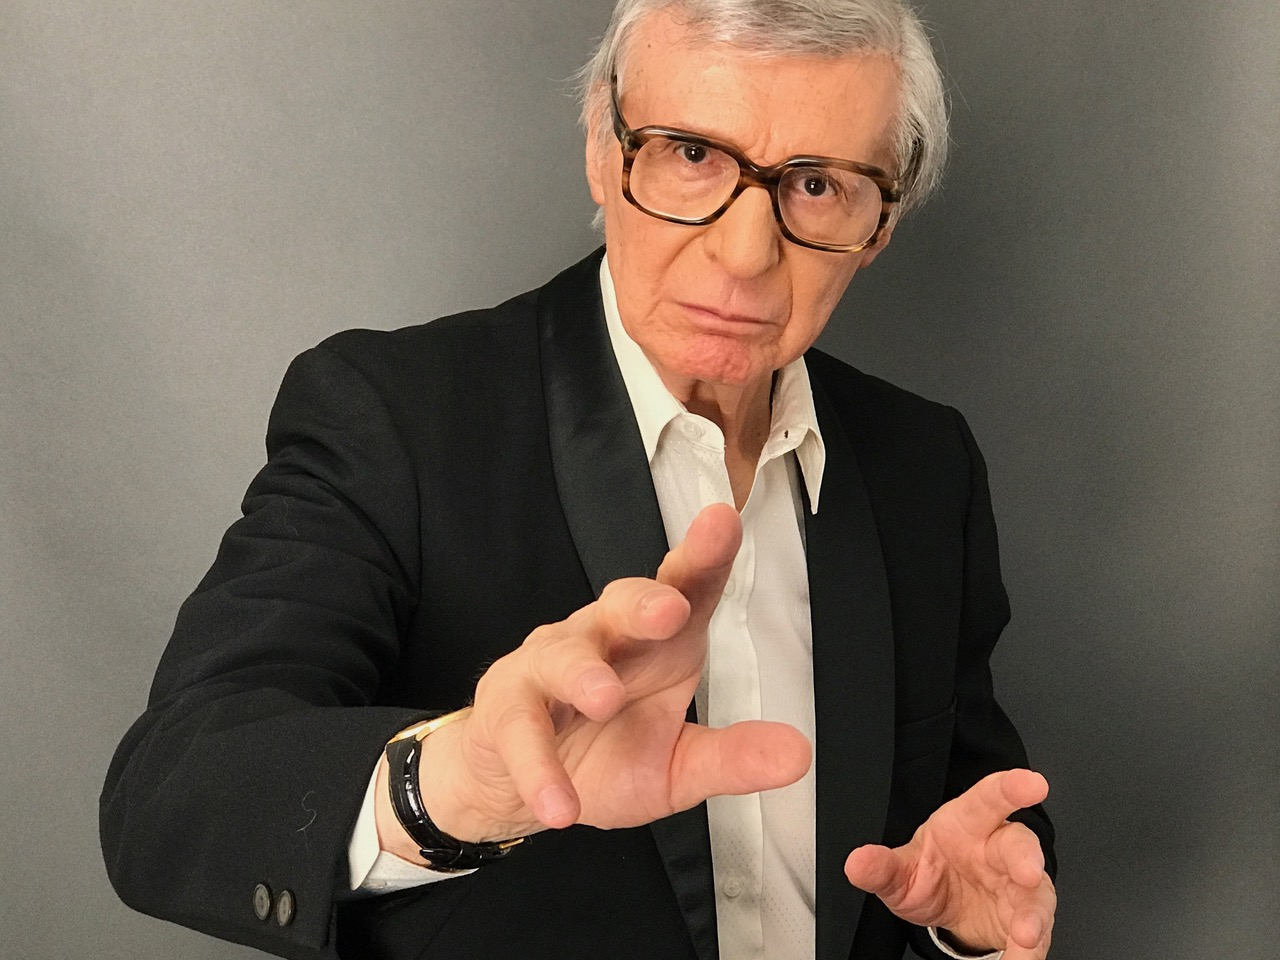 THE AMAZING KRESKIN - July 3-5, 2020 Show